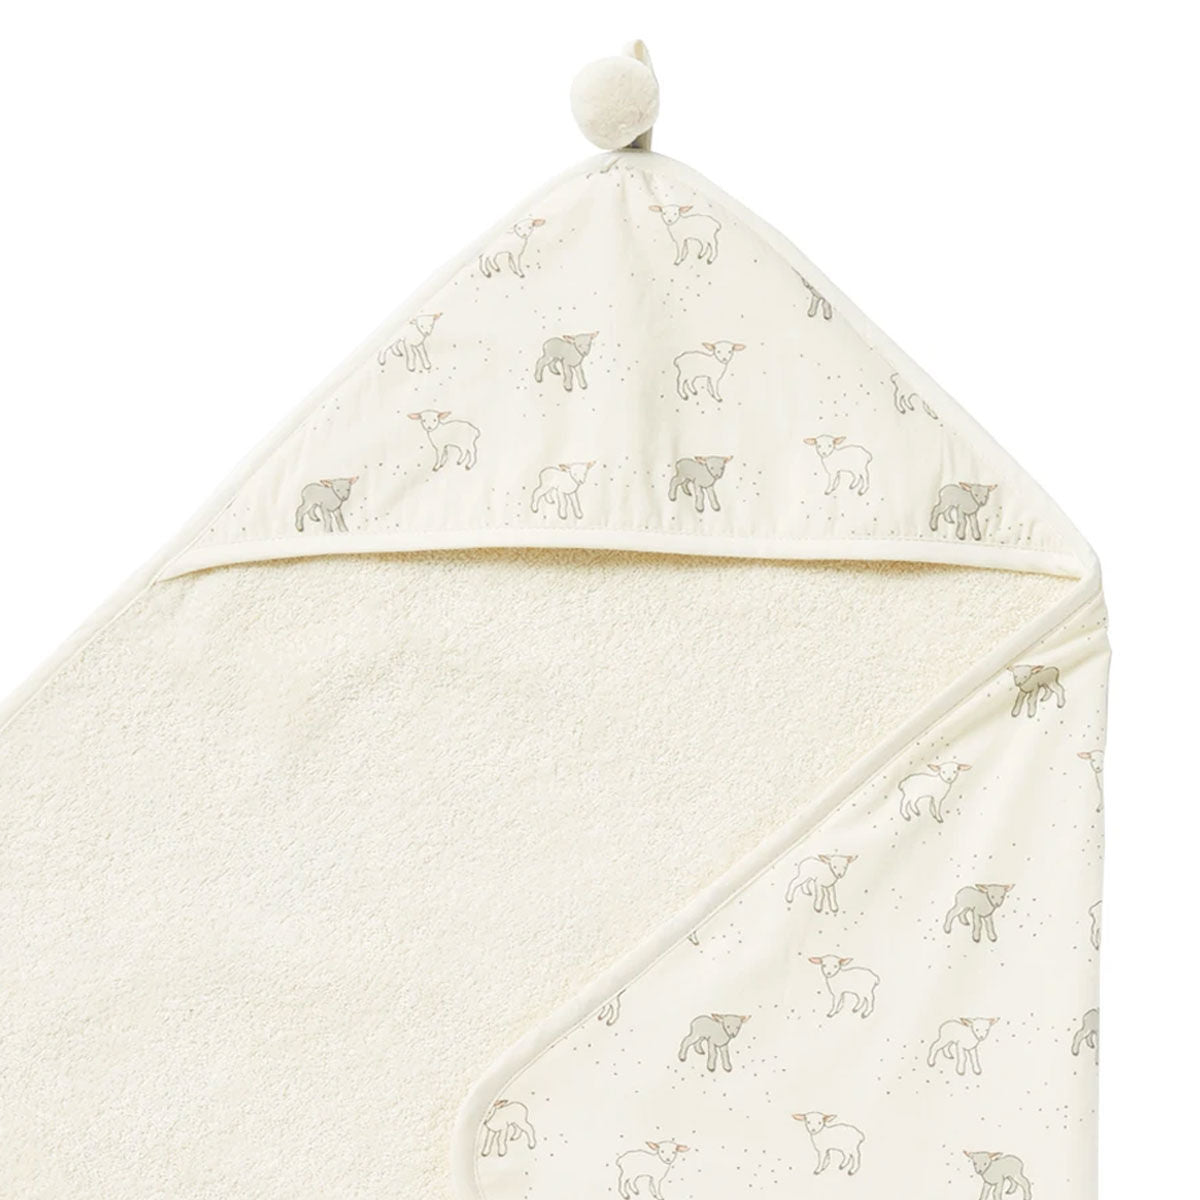 Pehr Design Lamb Hooded Baby Towel at Bonjour Baby Baskets